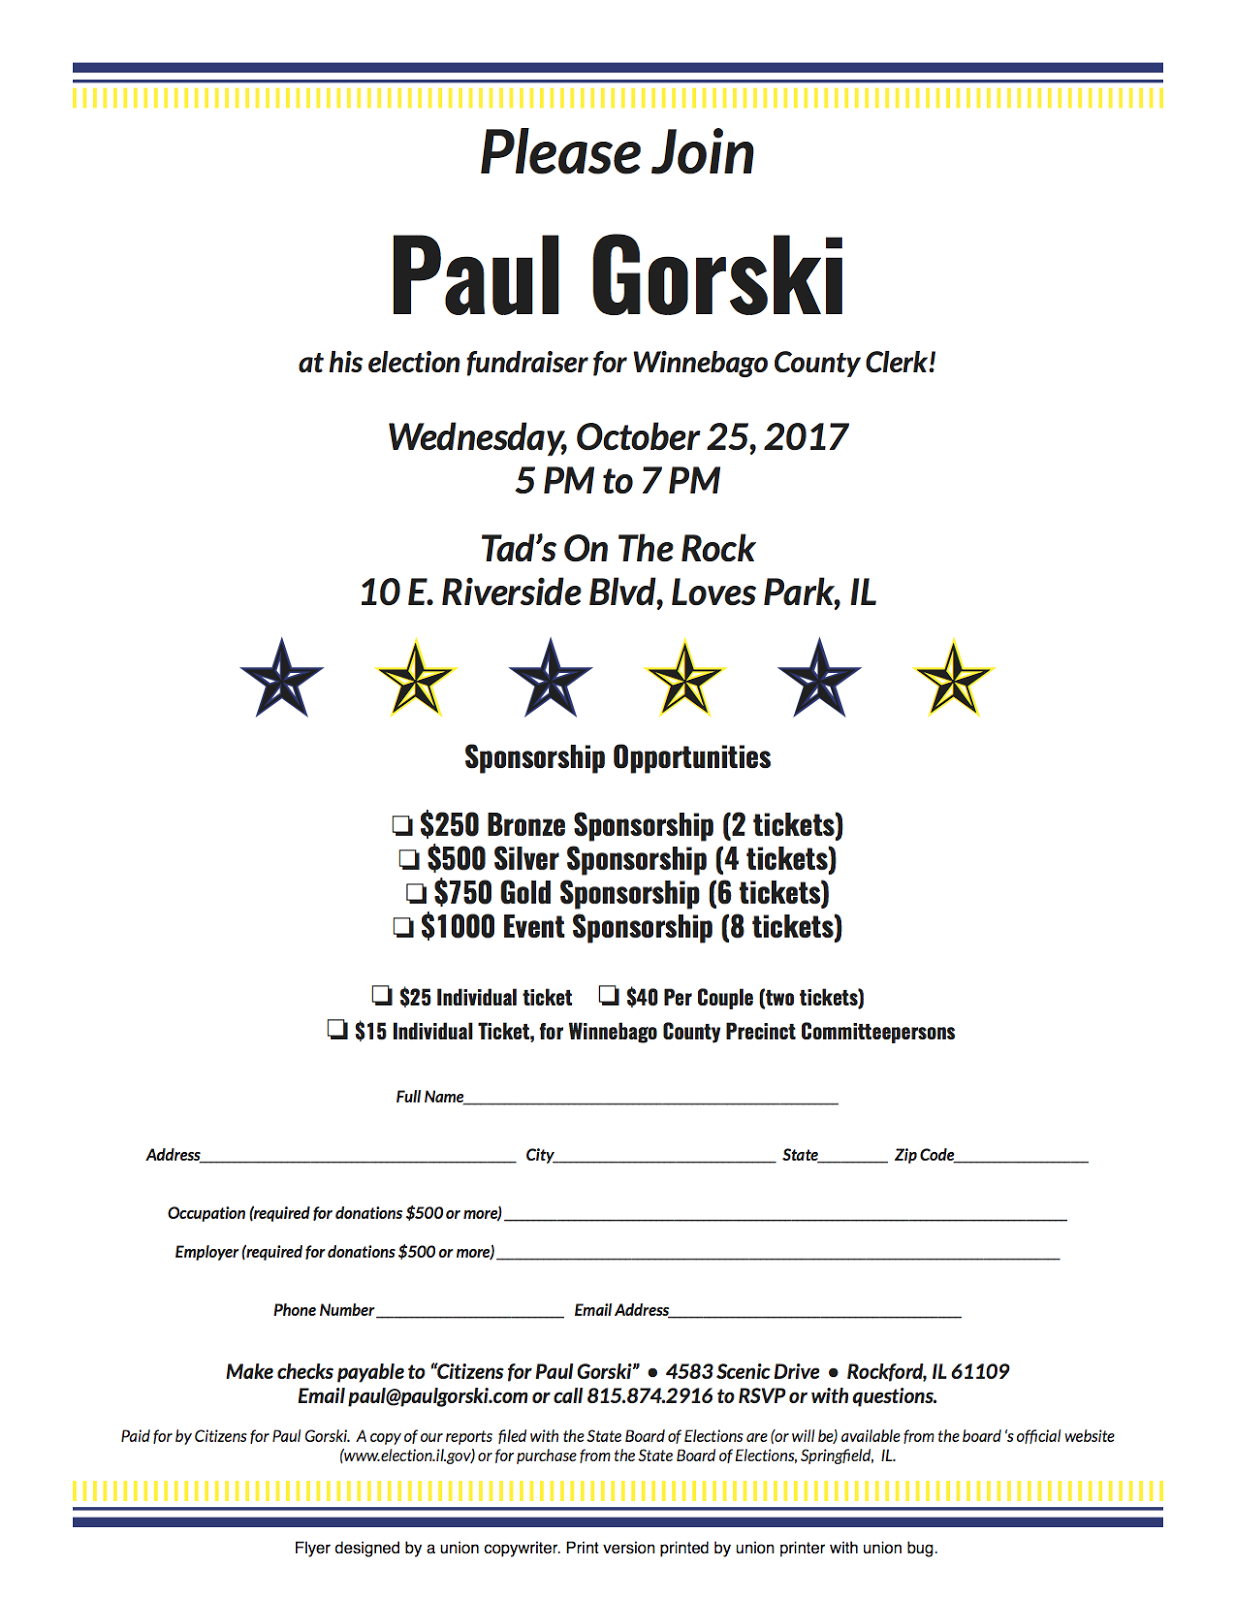 paul gorski for county clerk fundraiser wednesday october 25 2017